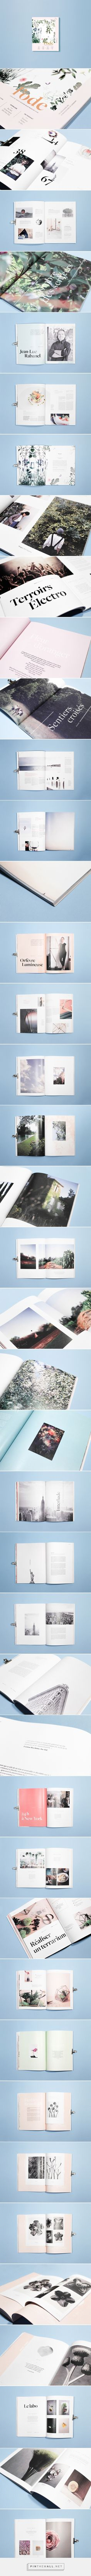 l'ode magazine - diptyque on Behance                                                                                                                                                                                 More